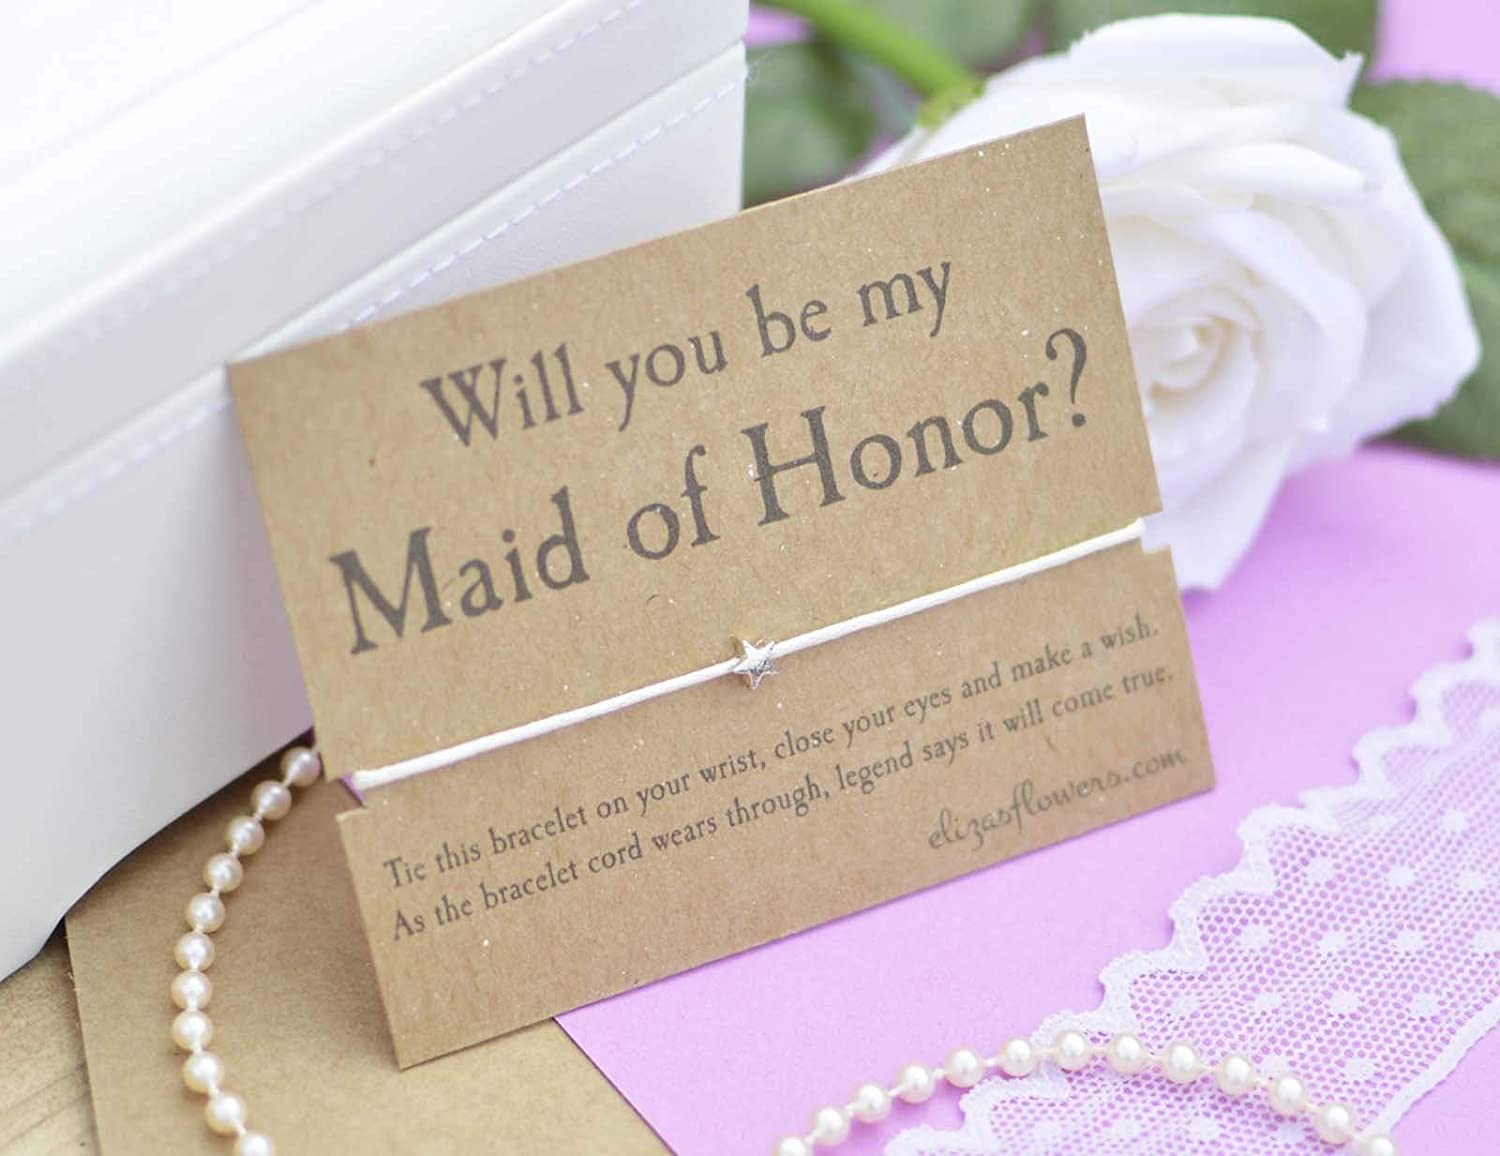 Maid Of Honour Wish Bracelet Will You Be My